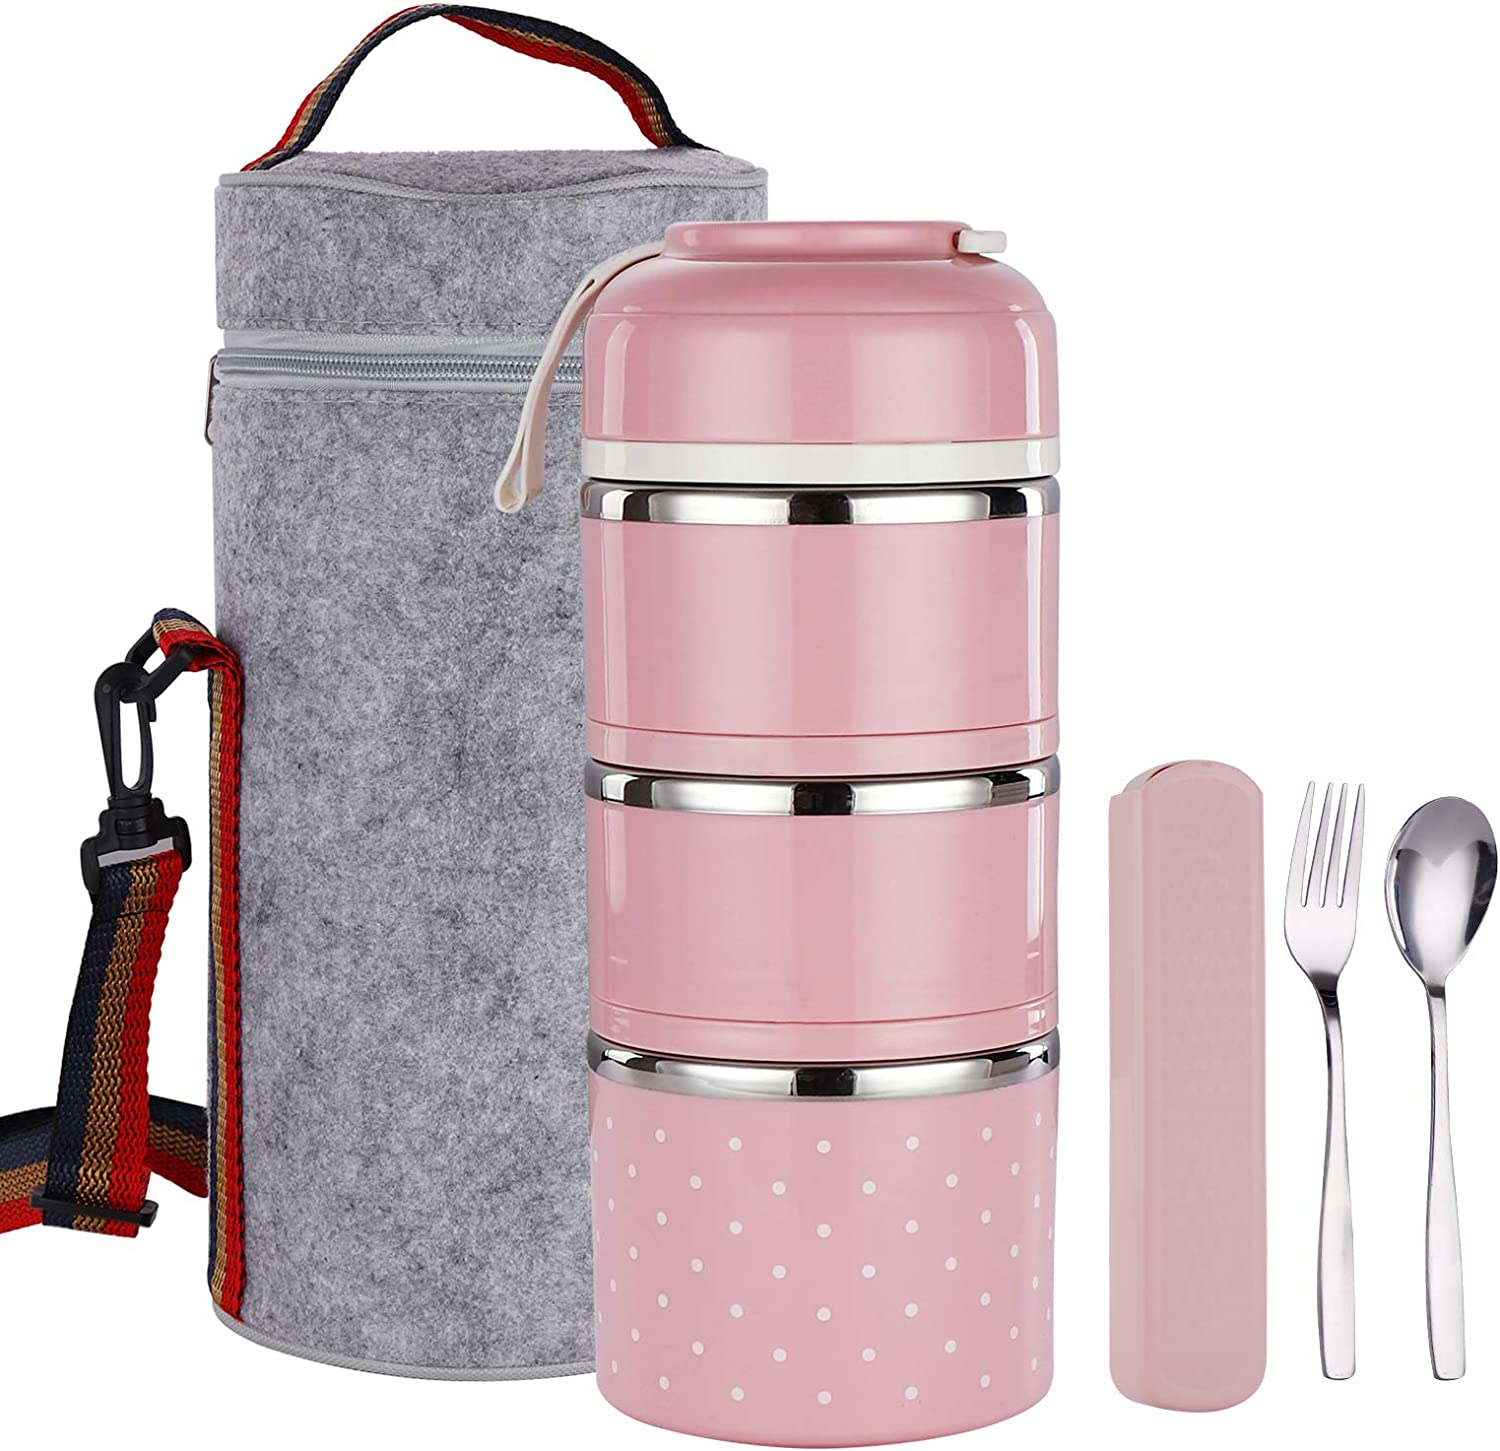 TiLeMiun 3 Layer Stackable Bento Lunch Box, Insulated Stainless Steel Compartment Lunch Container with Lunch Bag and Cutlerly BPA-Free (Pink)